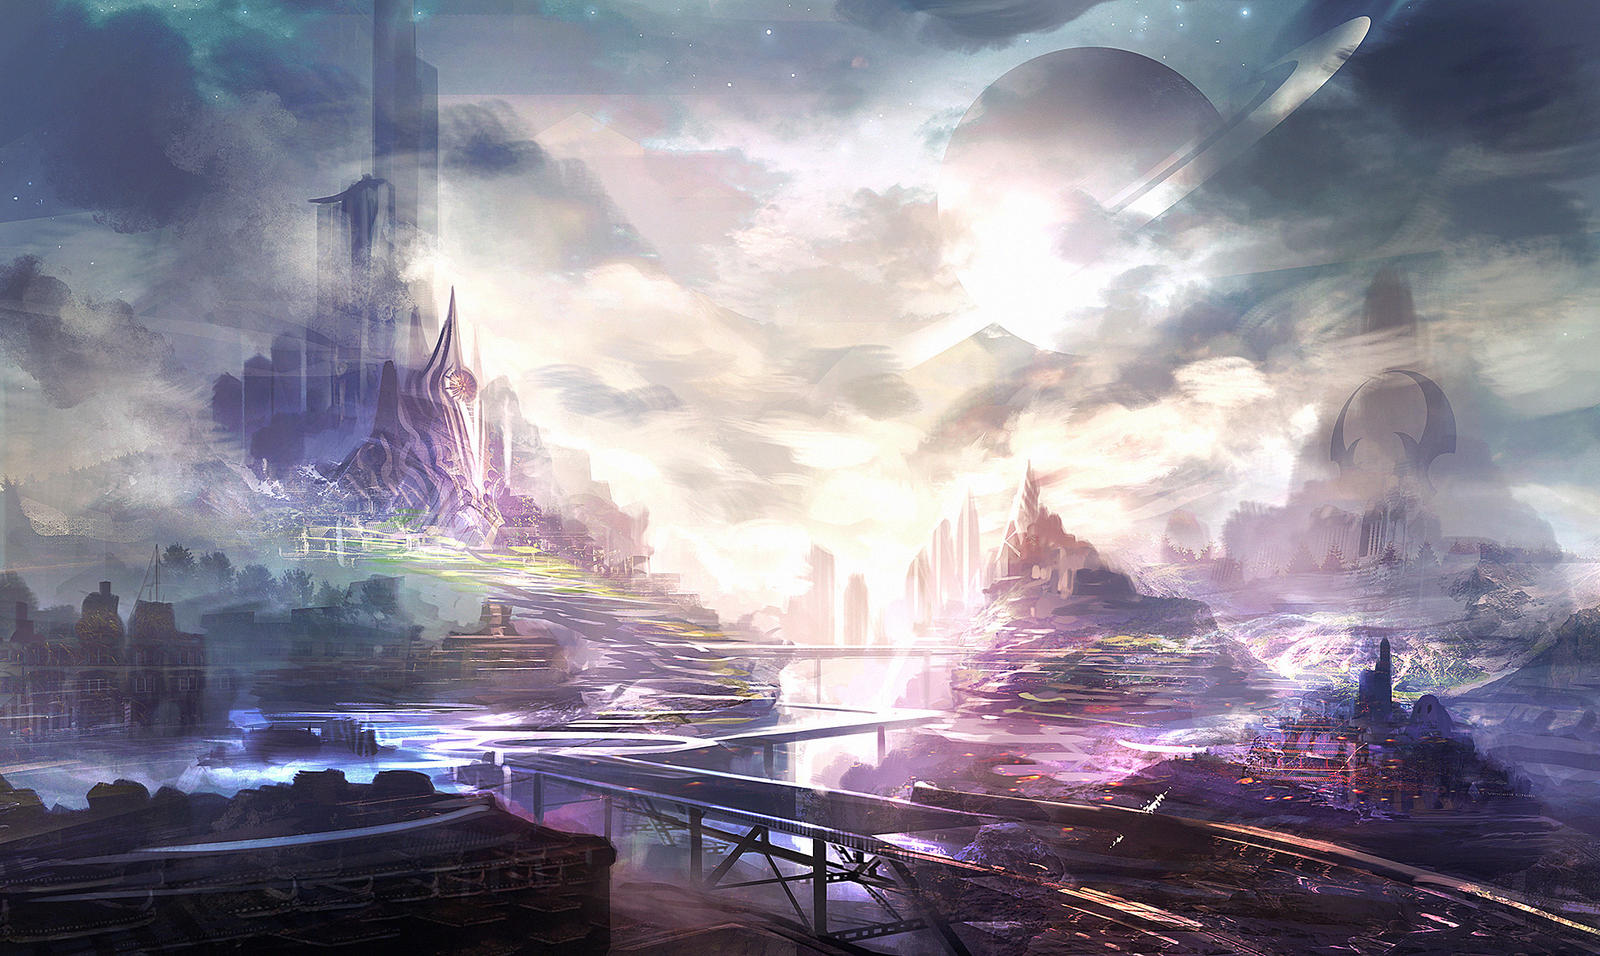 alien city by xpe